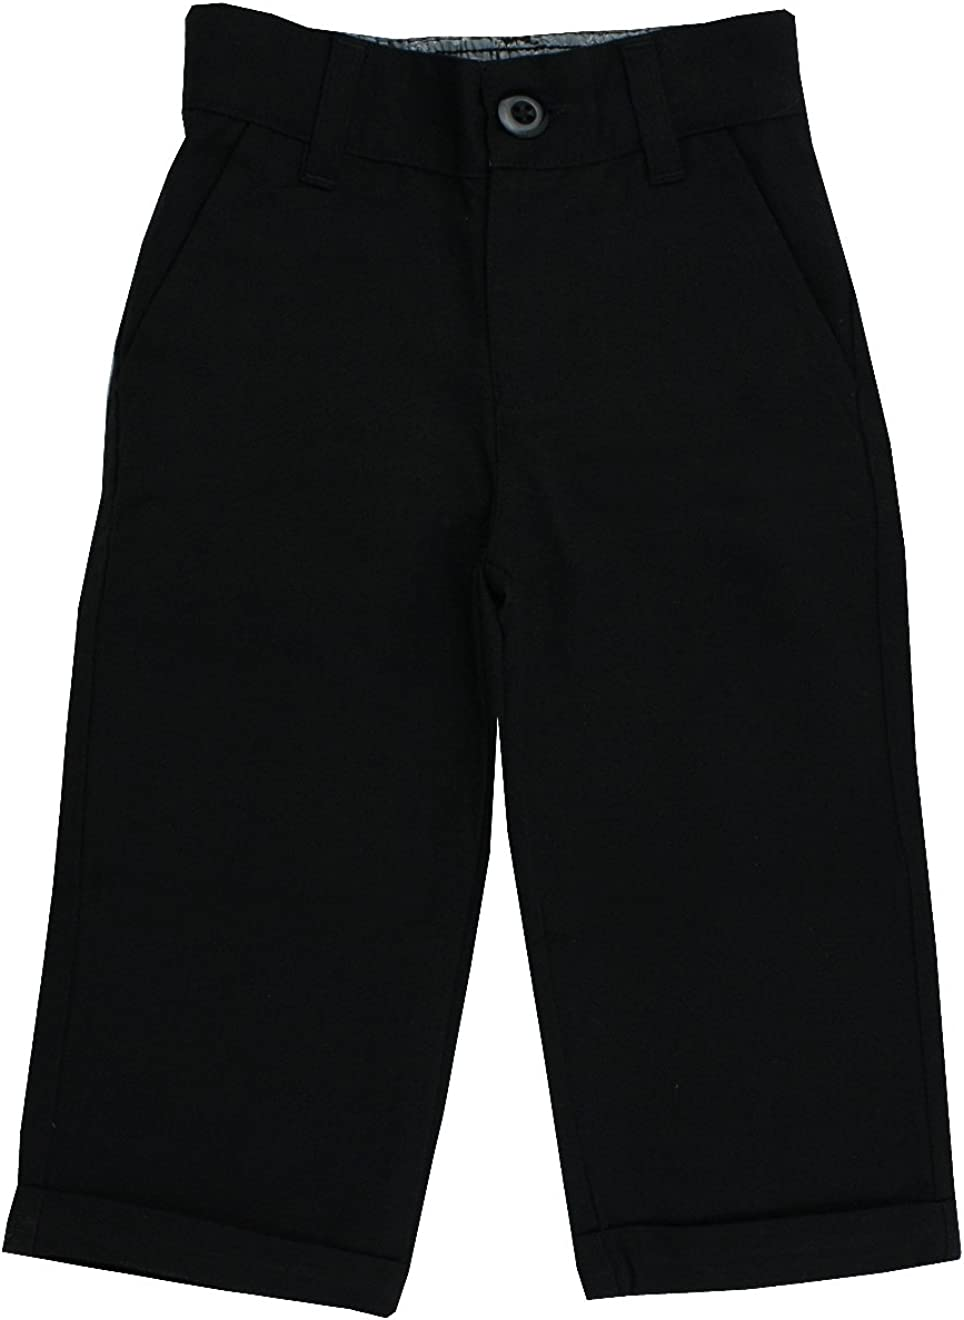 RuggedButts Baby/Toddler Boys Dress Pants